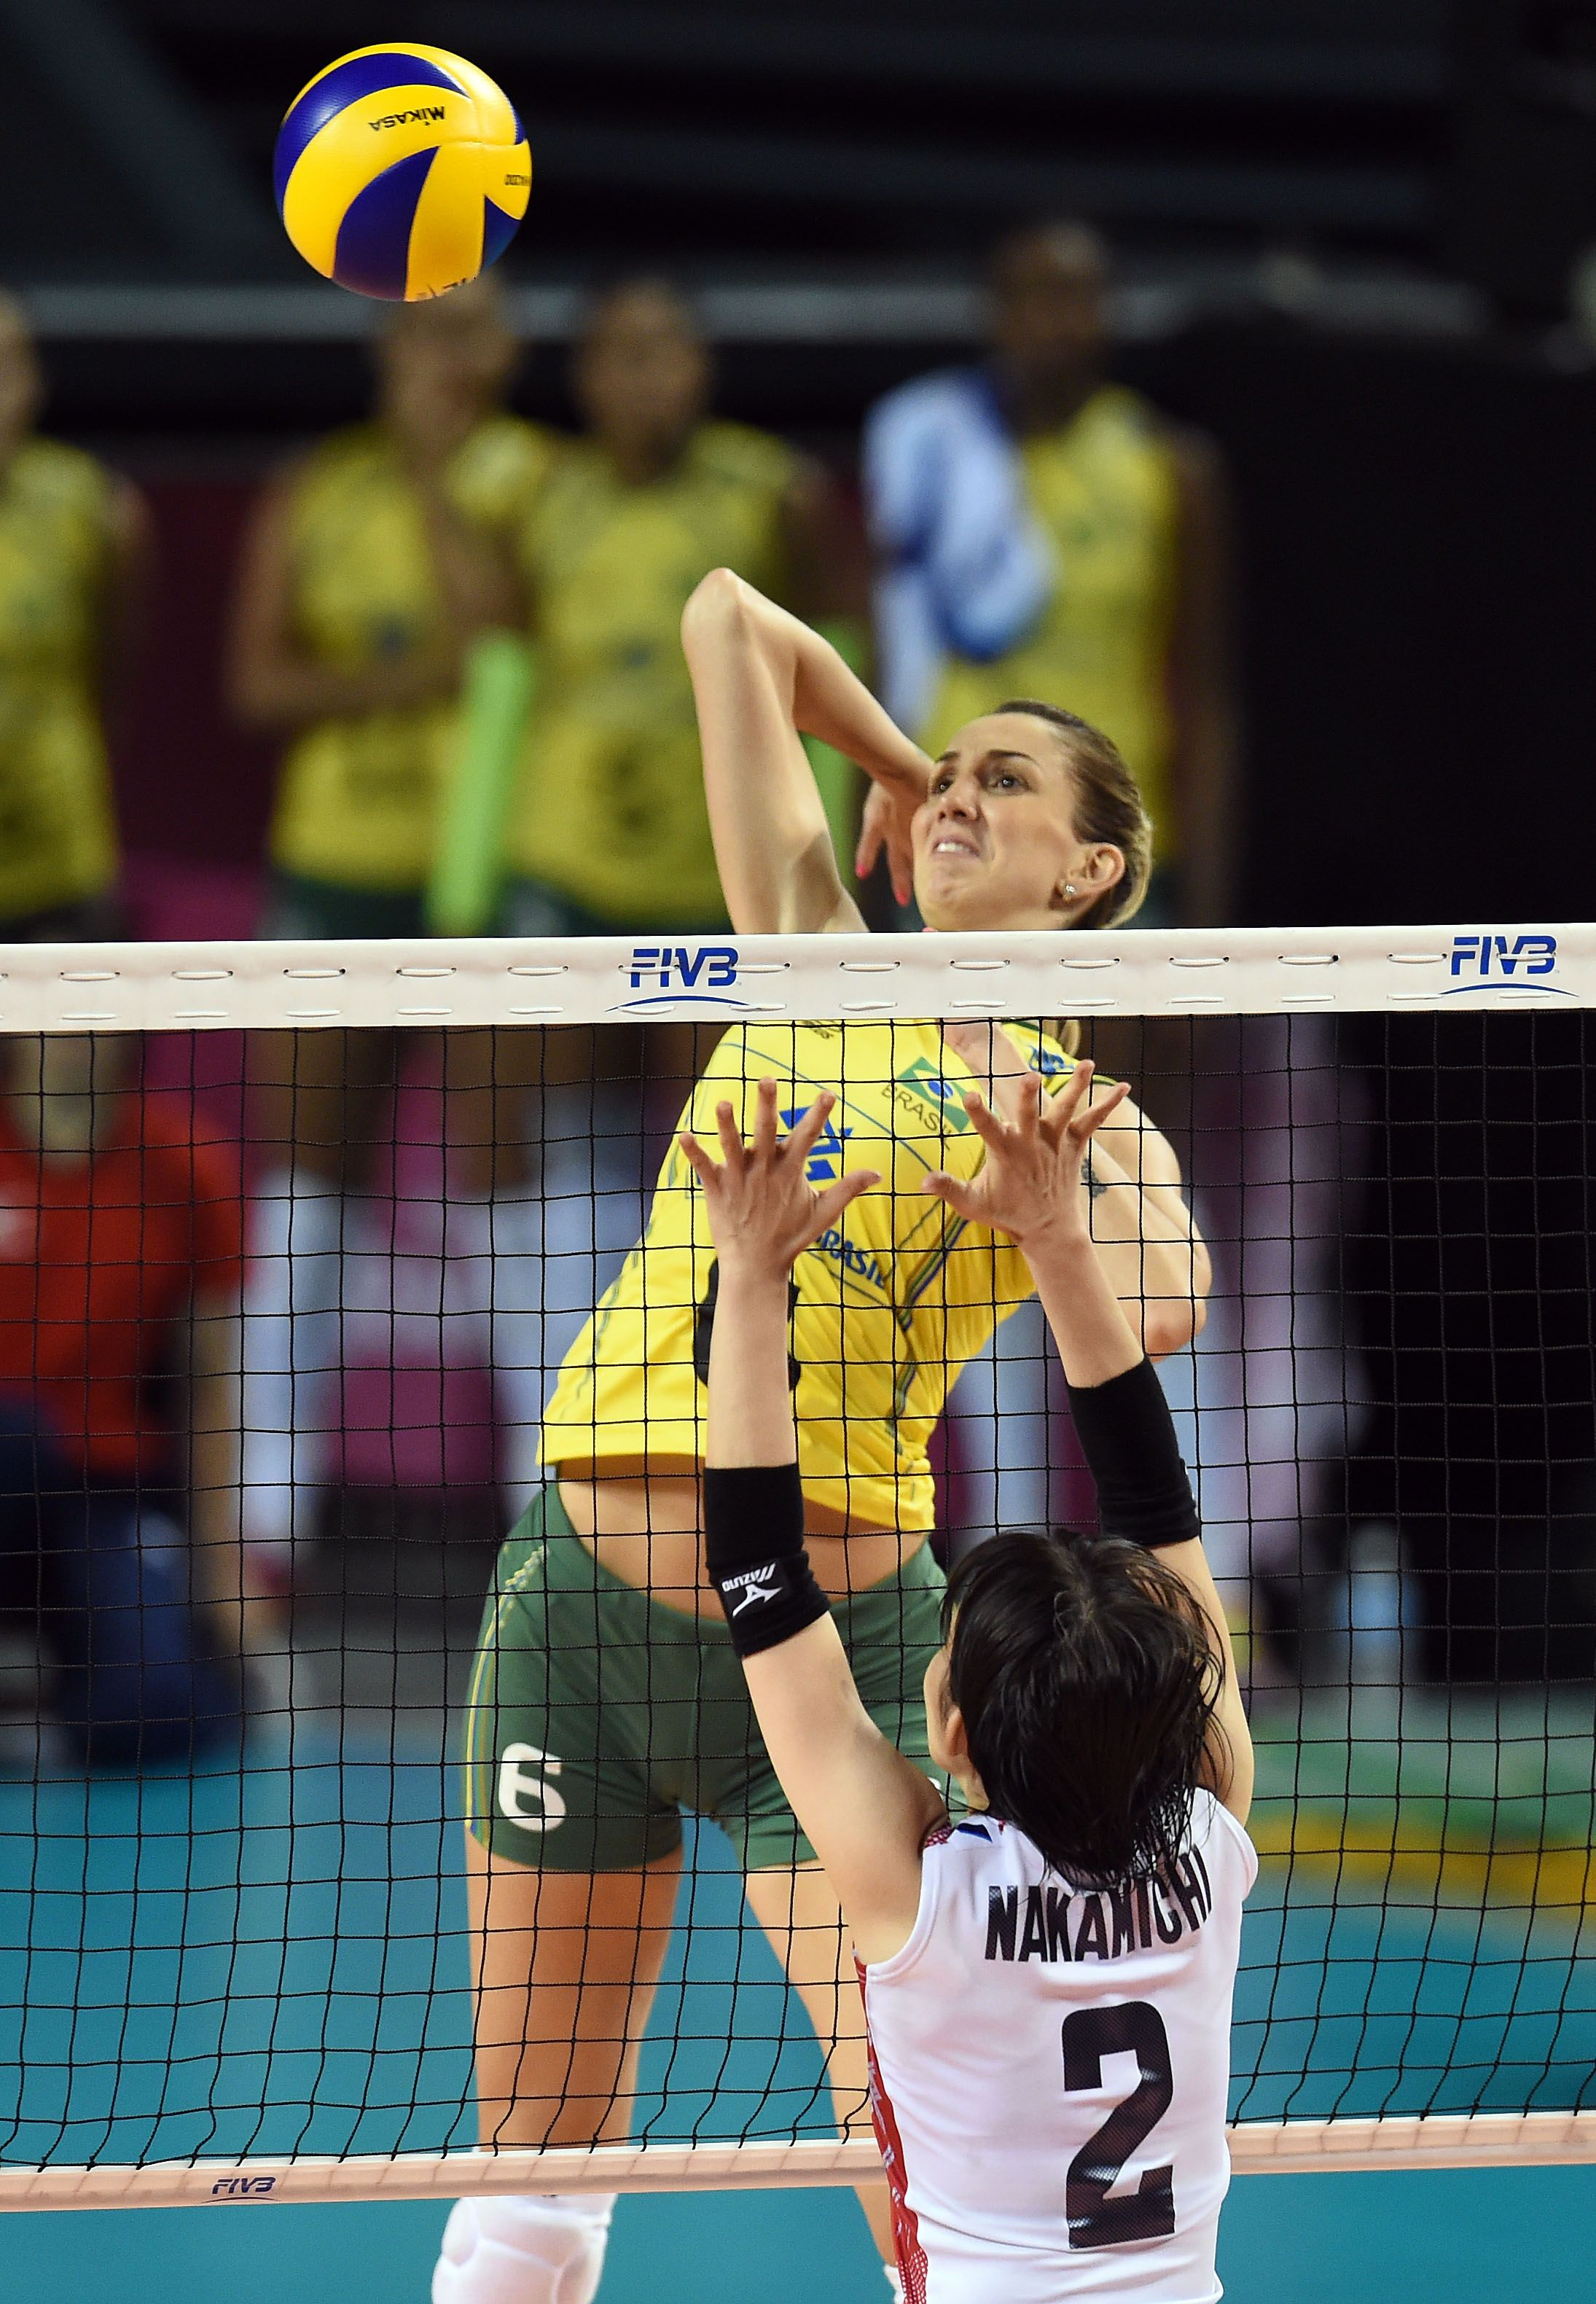 Thaisa Menezes Of Brazil Spikes The Ball Running Workout Plan Female Volleyball Players Volleyball Outfits